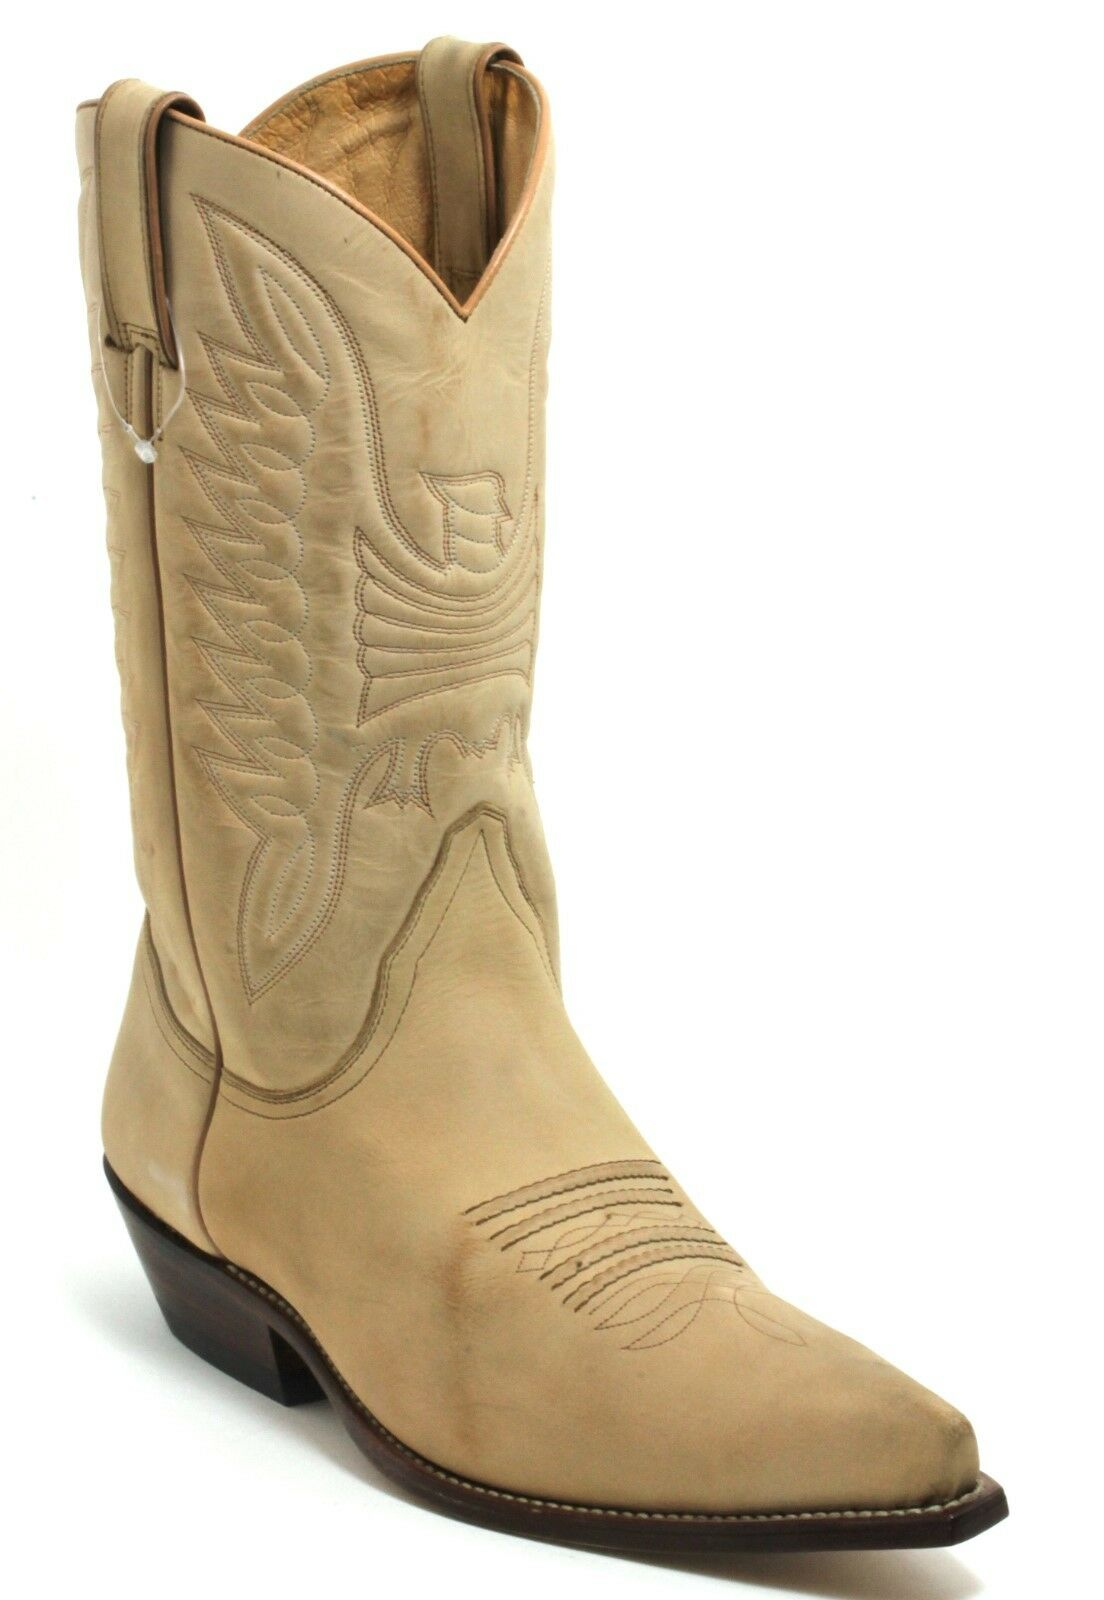 94 Cowboy Boots Western Boots Texas Catalan Style Embroideries Tequila Boots 46